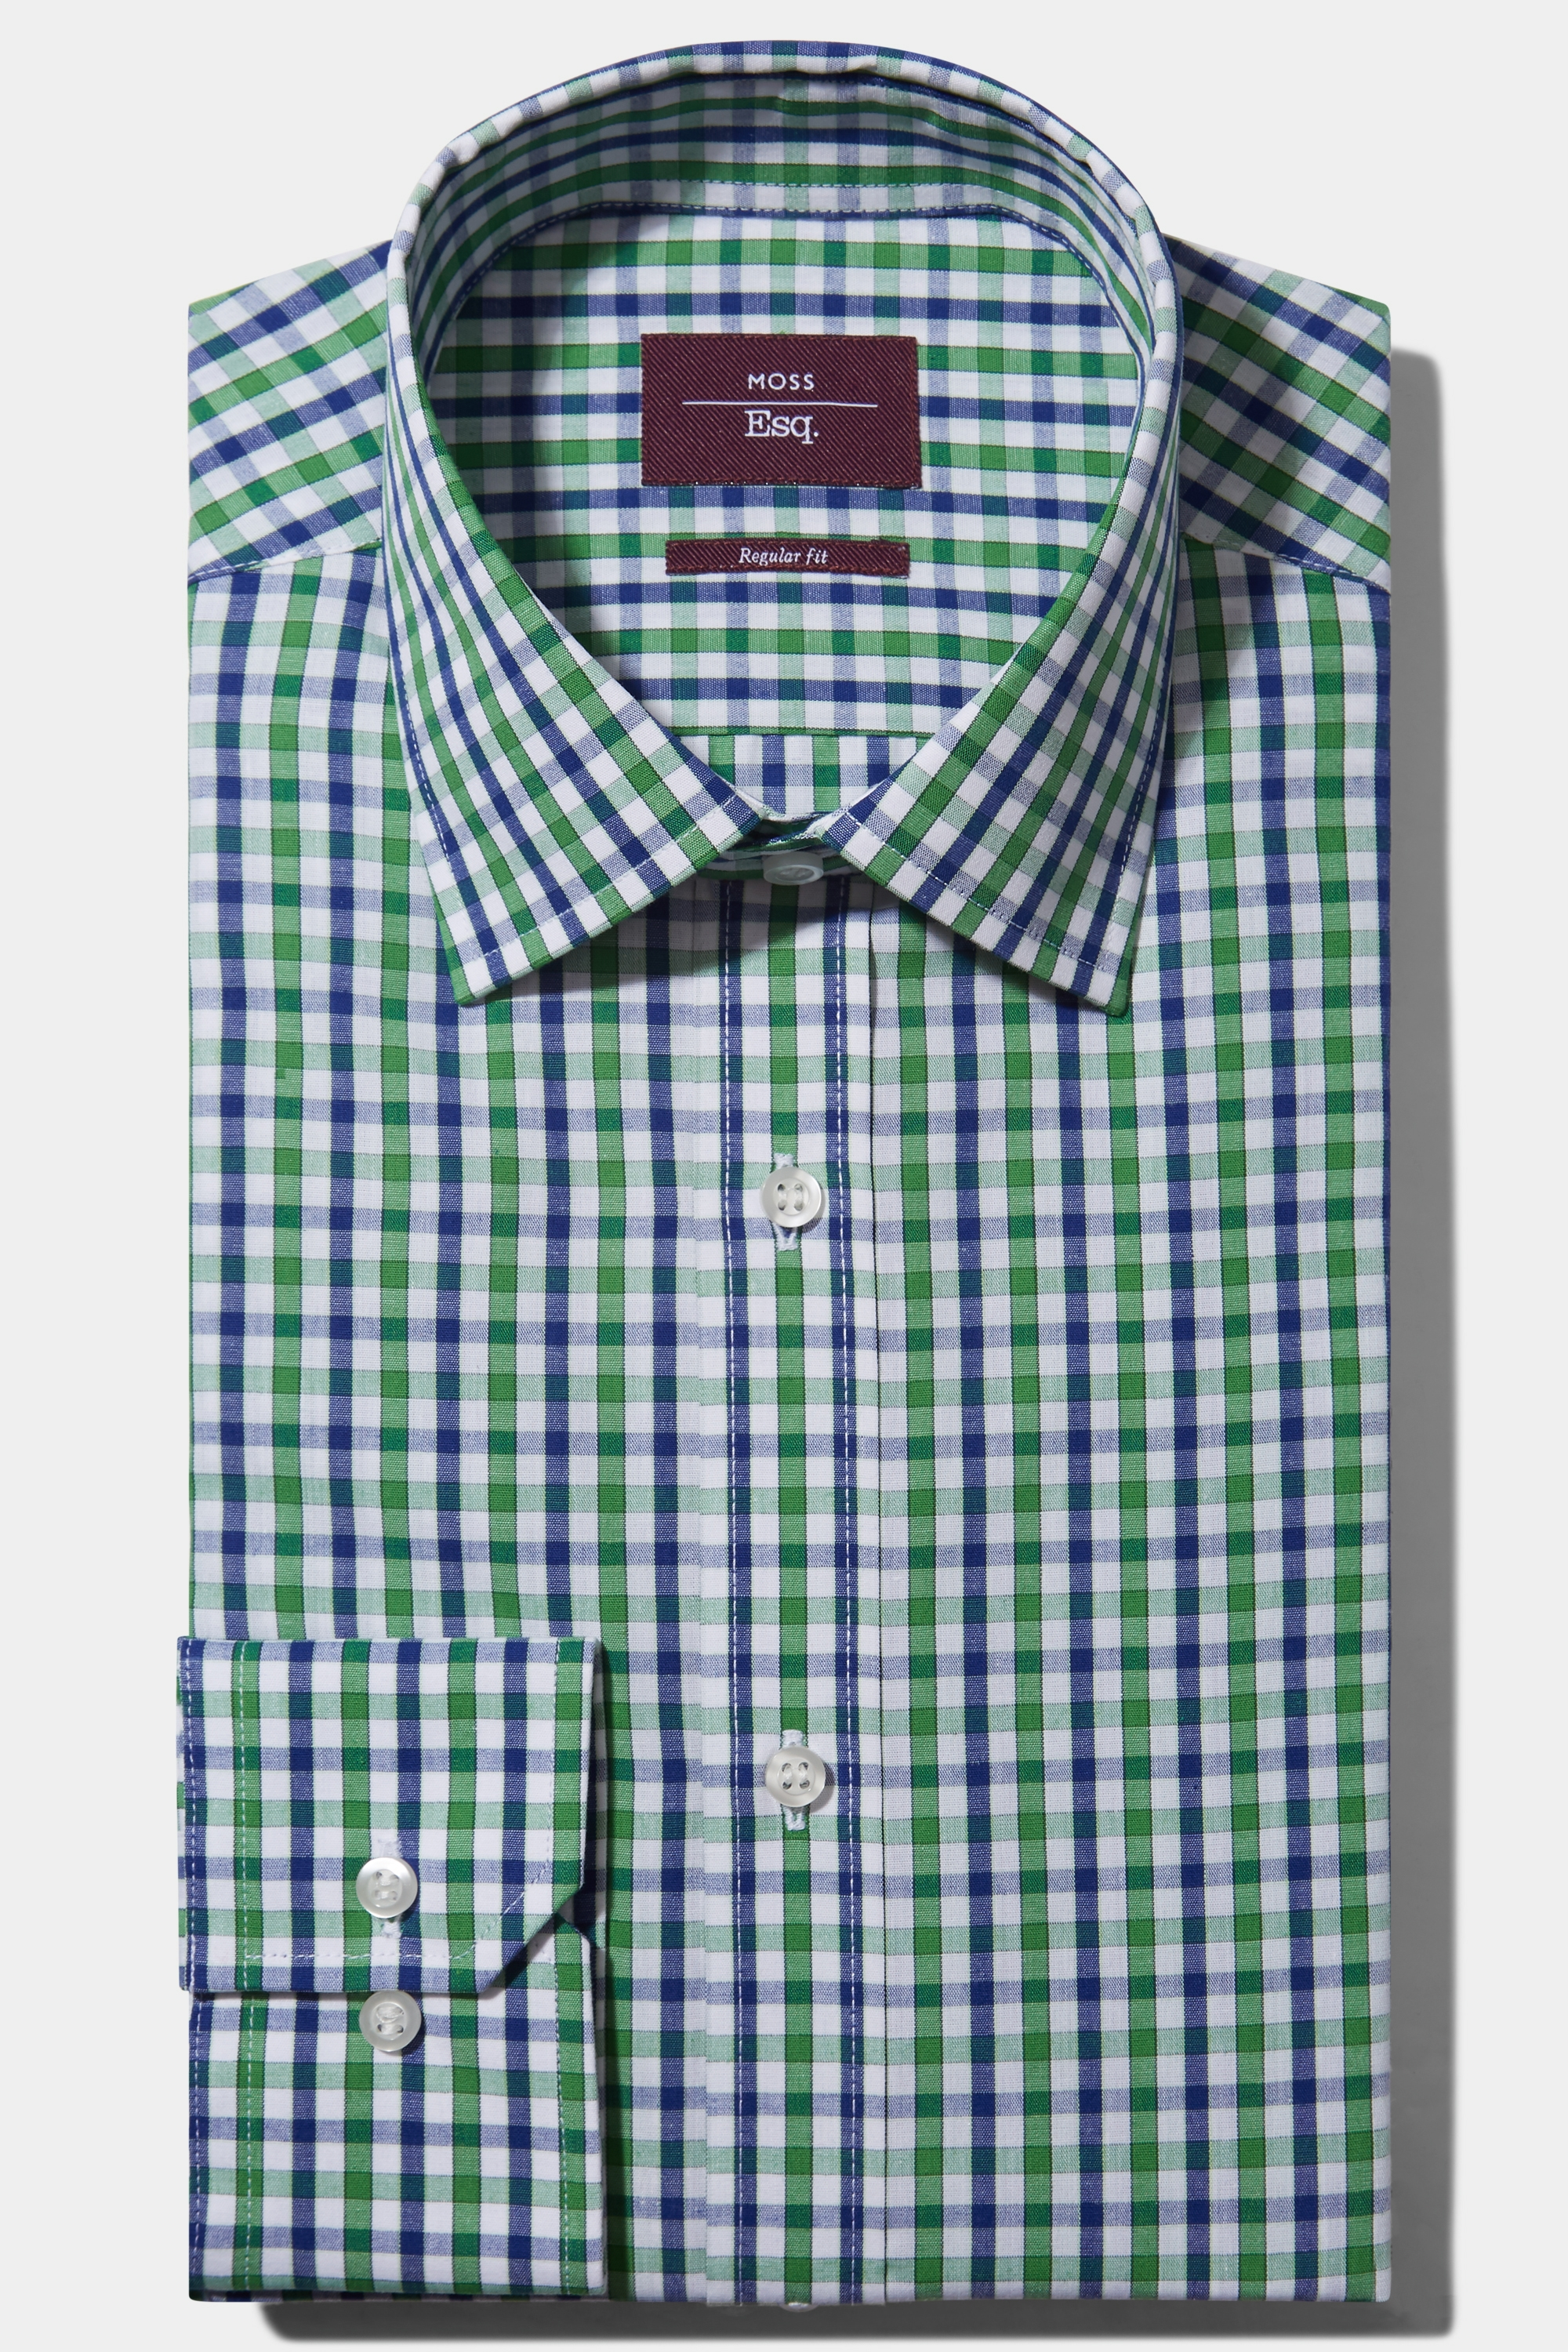 Moss Bros Moss Esq. Regular Fit Green Single Cuff Check Shirt